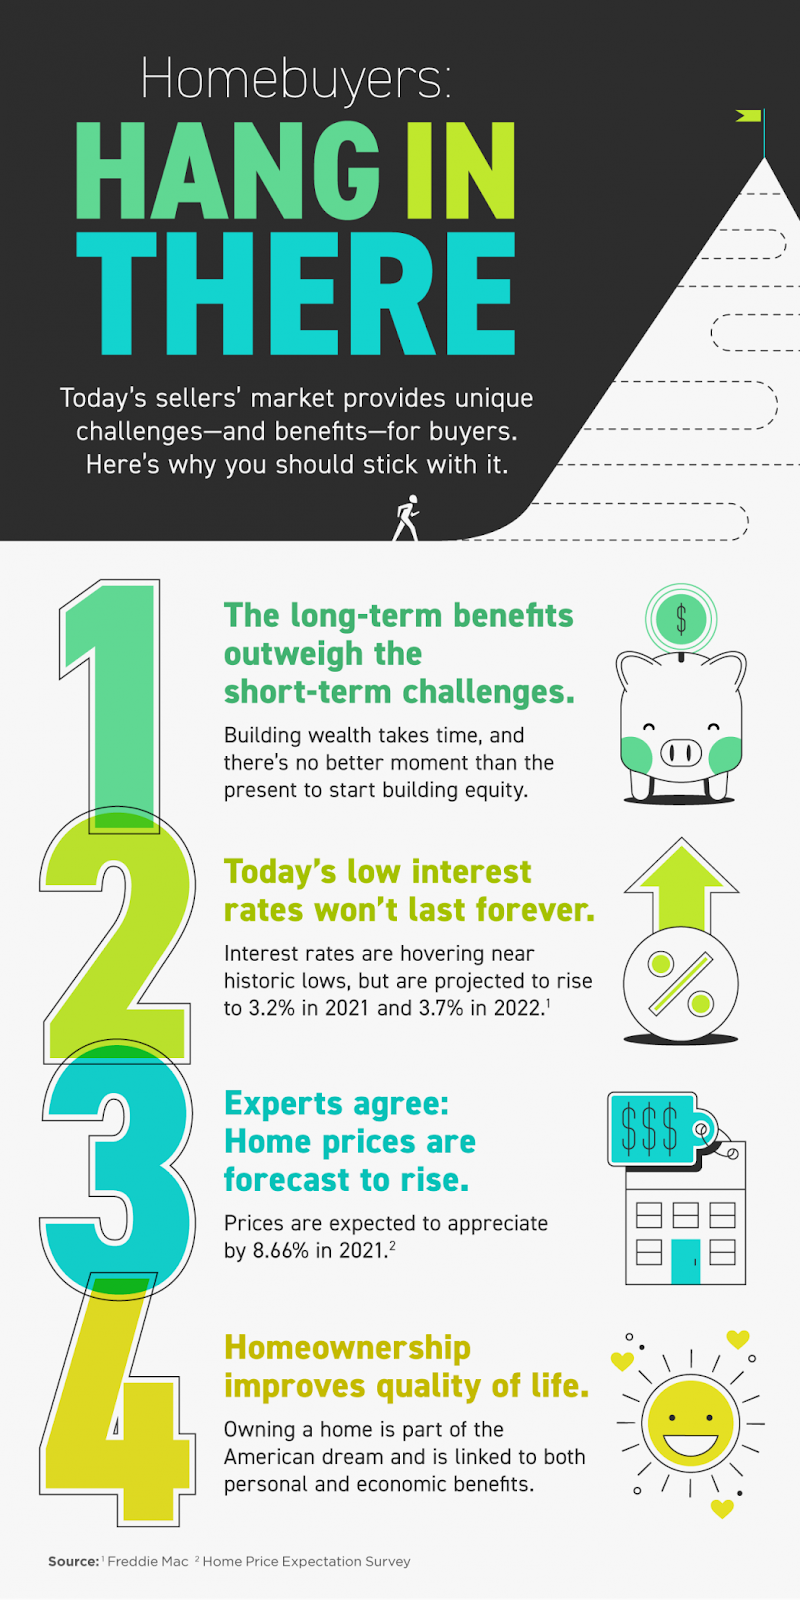 Homebuyers: Hang in There [INFOGRAPHIC]   MyKCM